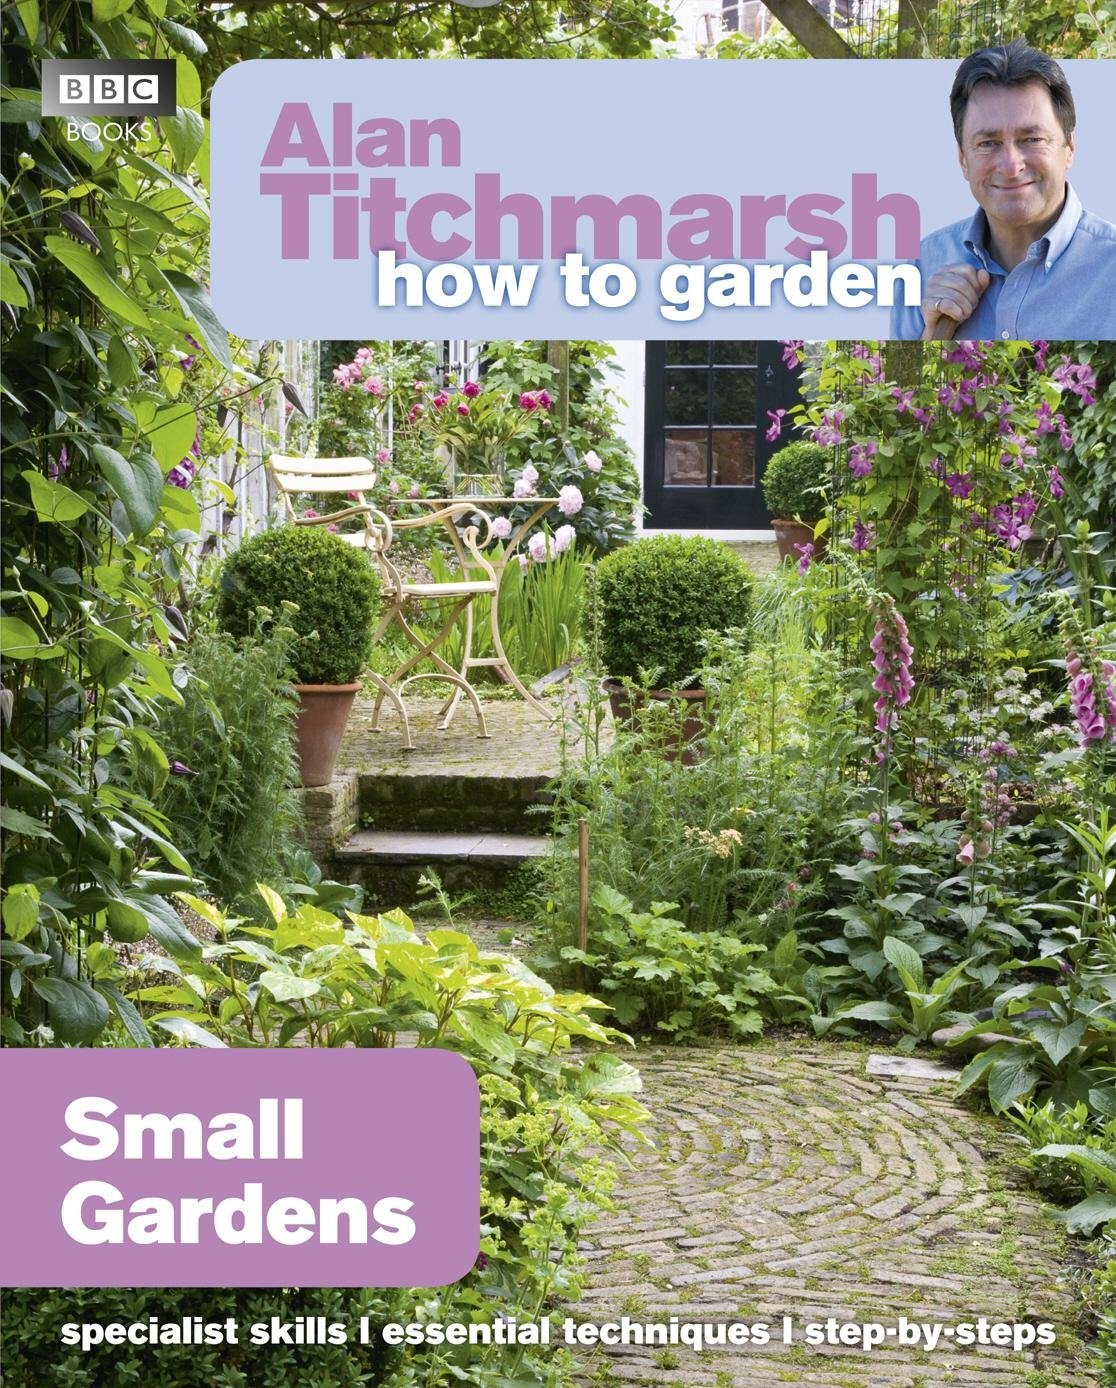 Alan Titchmarsh How To Garden: Small Gardens: Amazon.co.uk: Alan  Titchmarsh: 8601200765823: Books